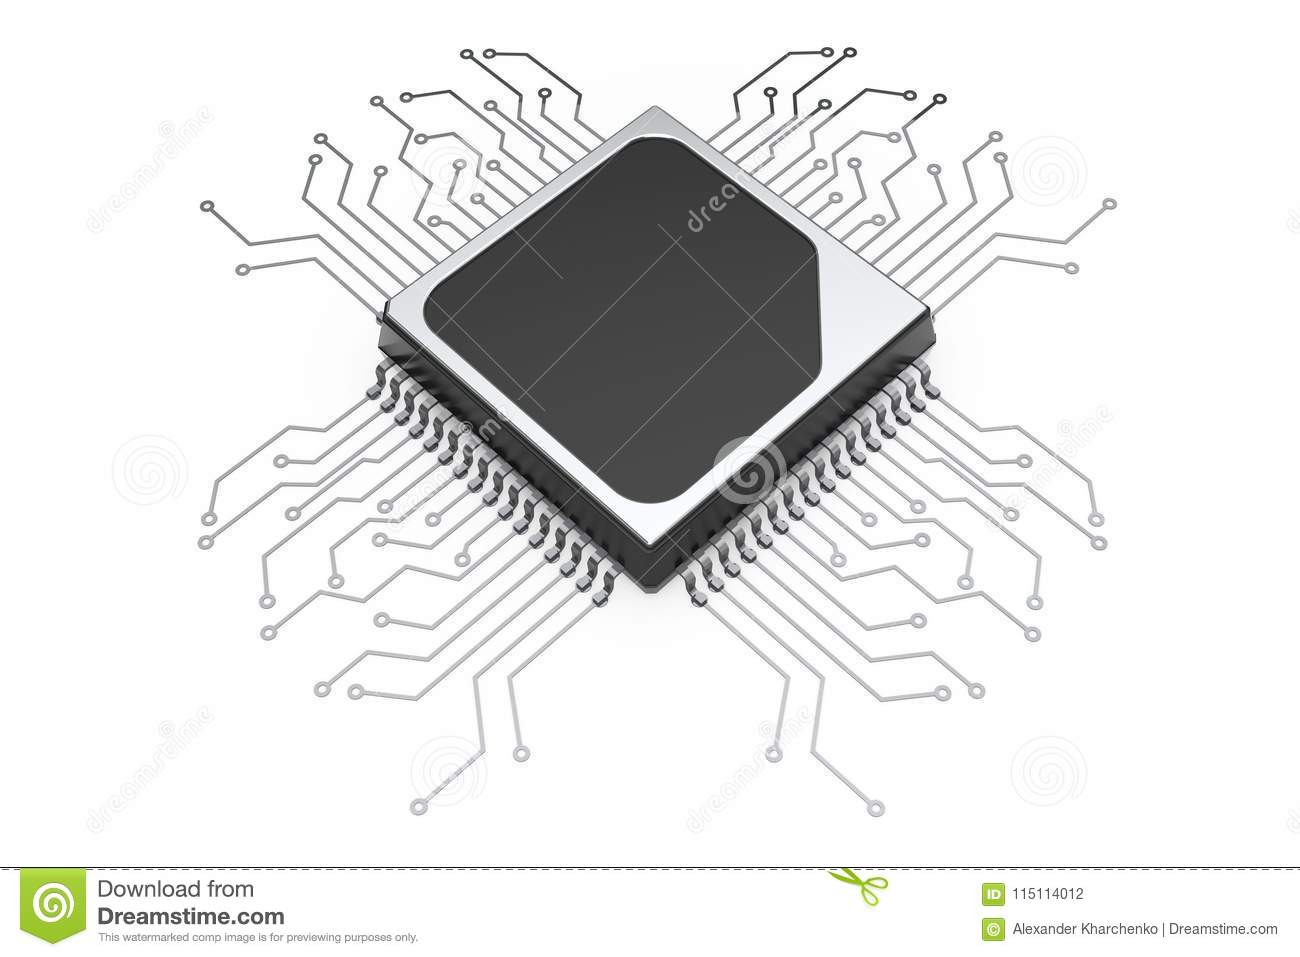 Microchip Cpu Processor With Circuit 3d Rendering Stock Diagram Of A On White Background